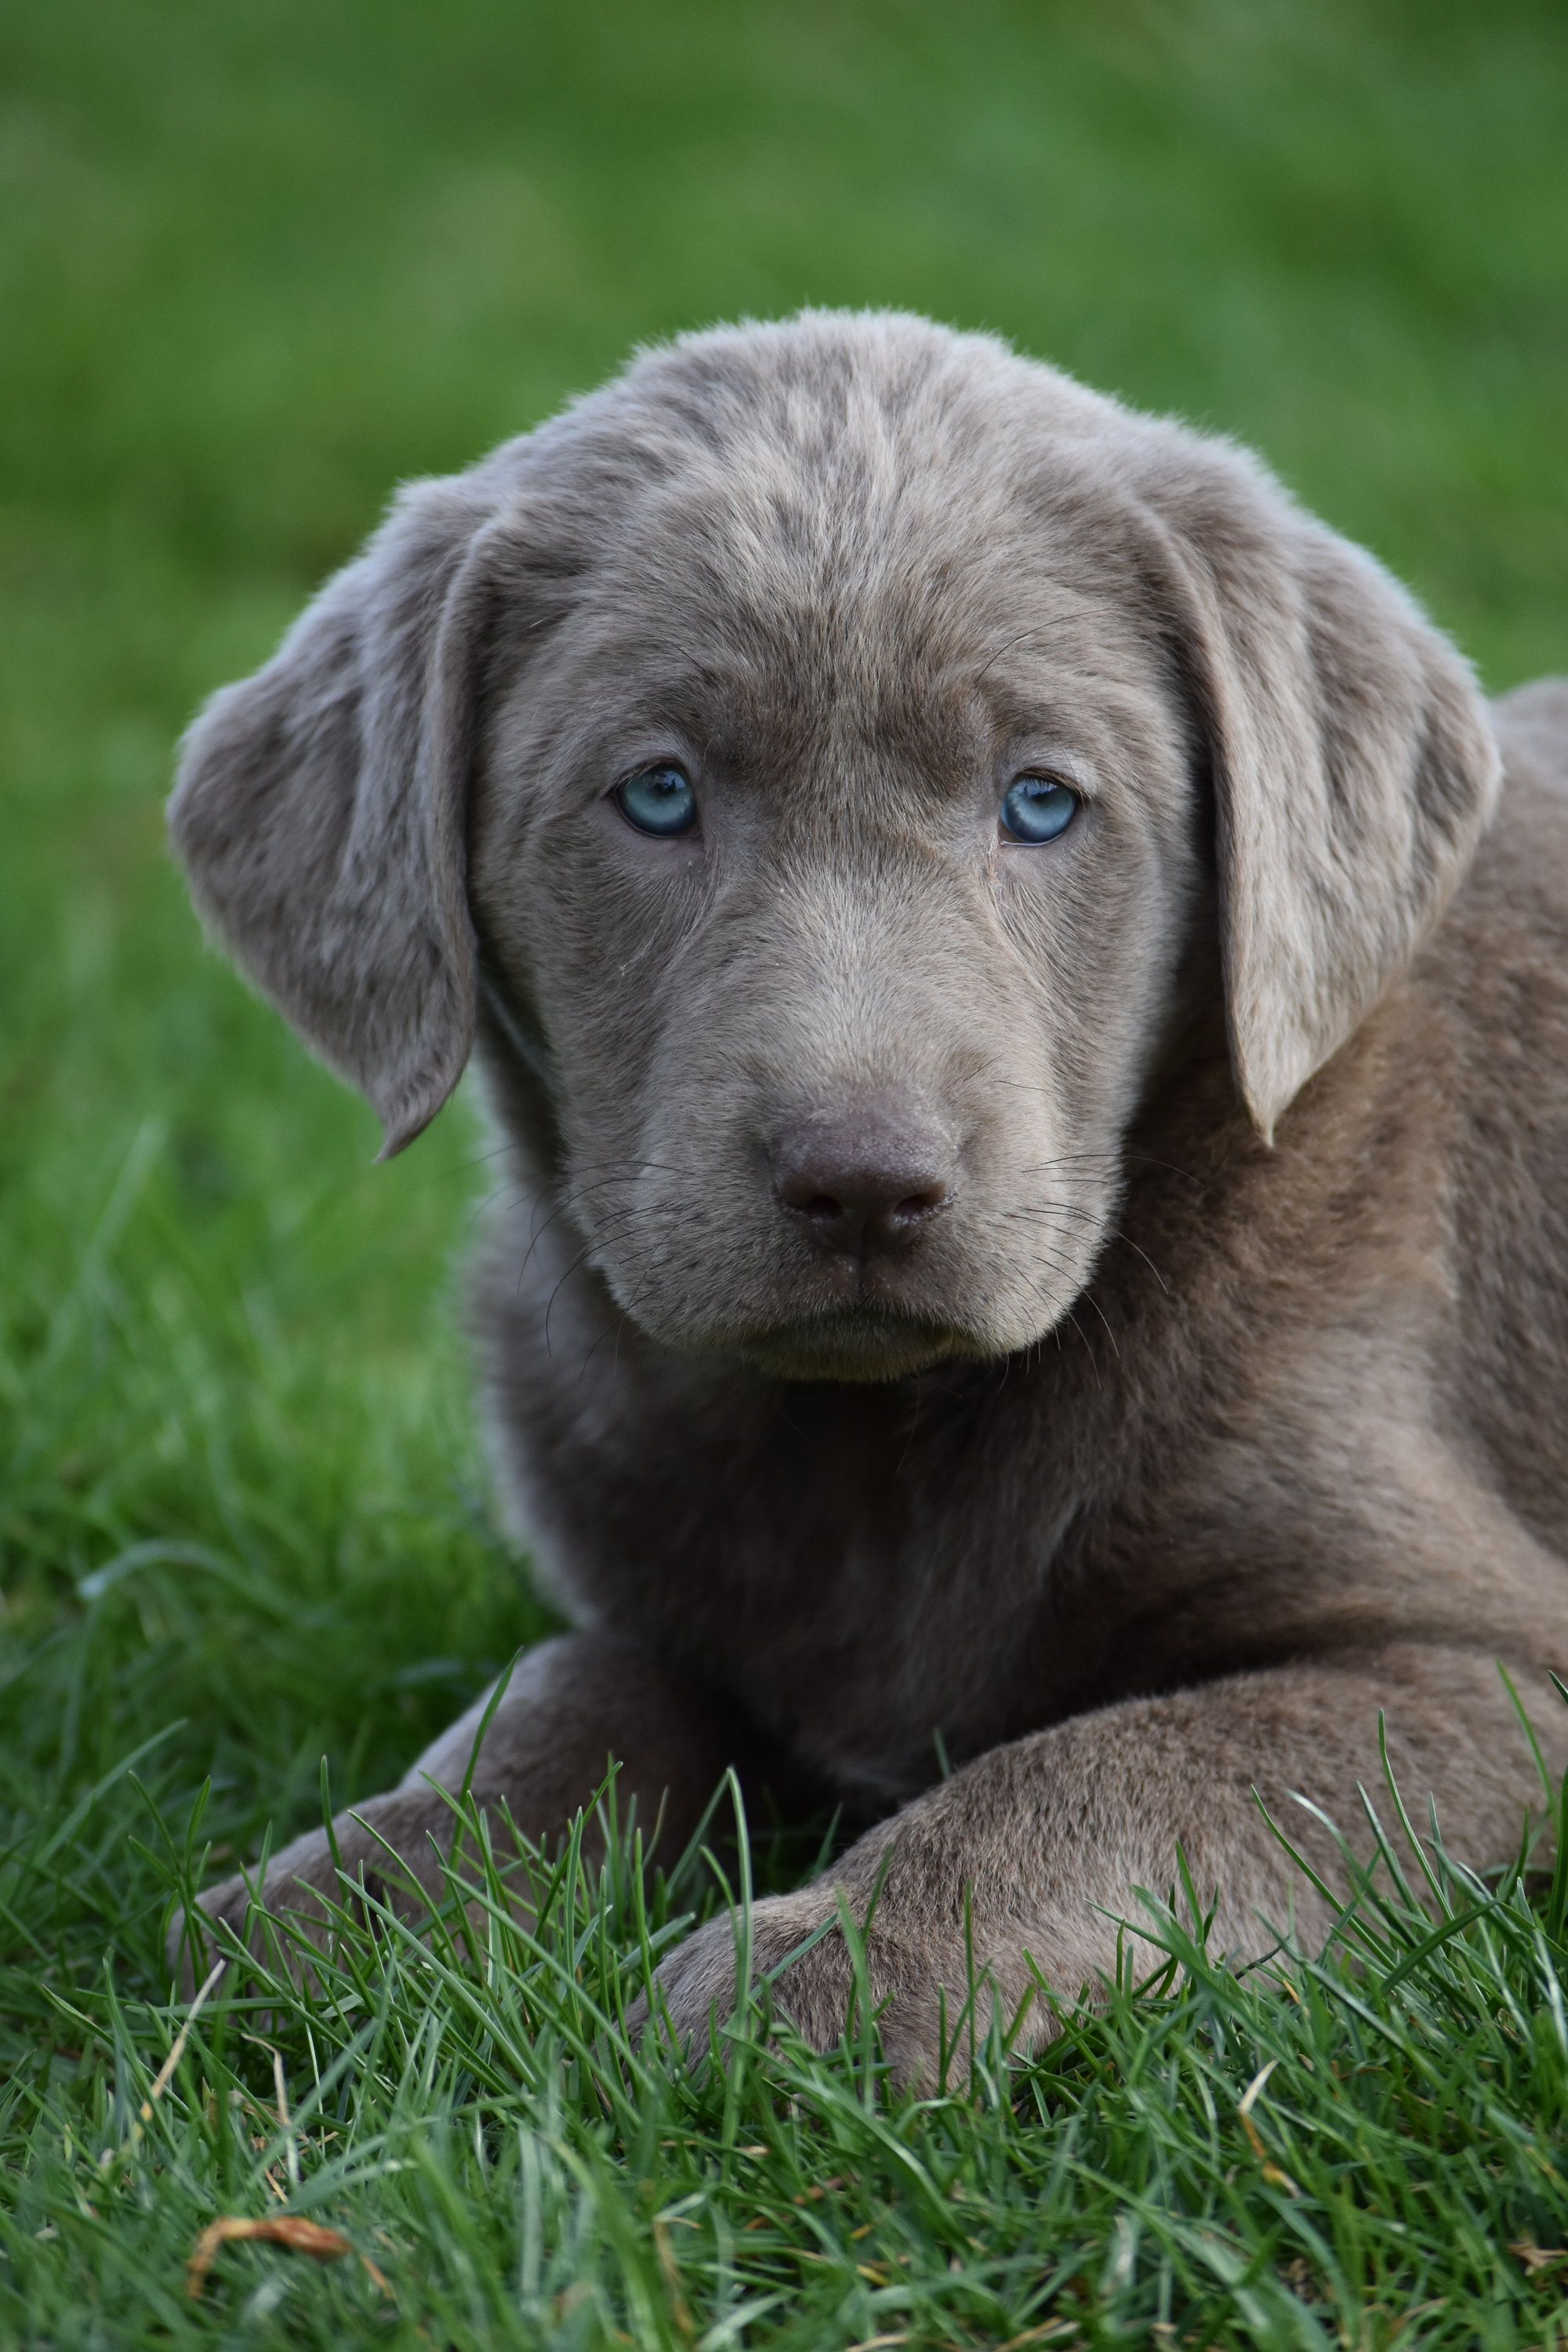 Pin By 𝔾𝕣𝕒𝕔𝕚𝕖 On Awwwww Silver Lab Puppies Lab Puppies Golden Labrador Puppies